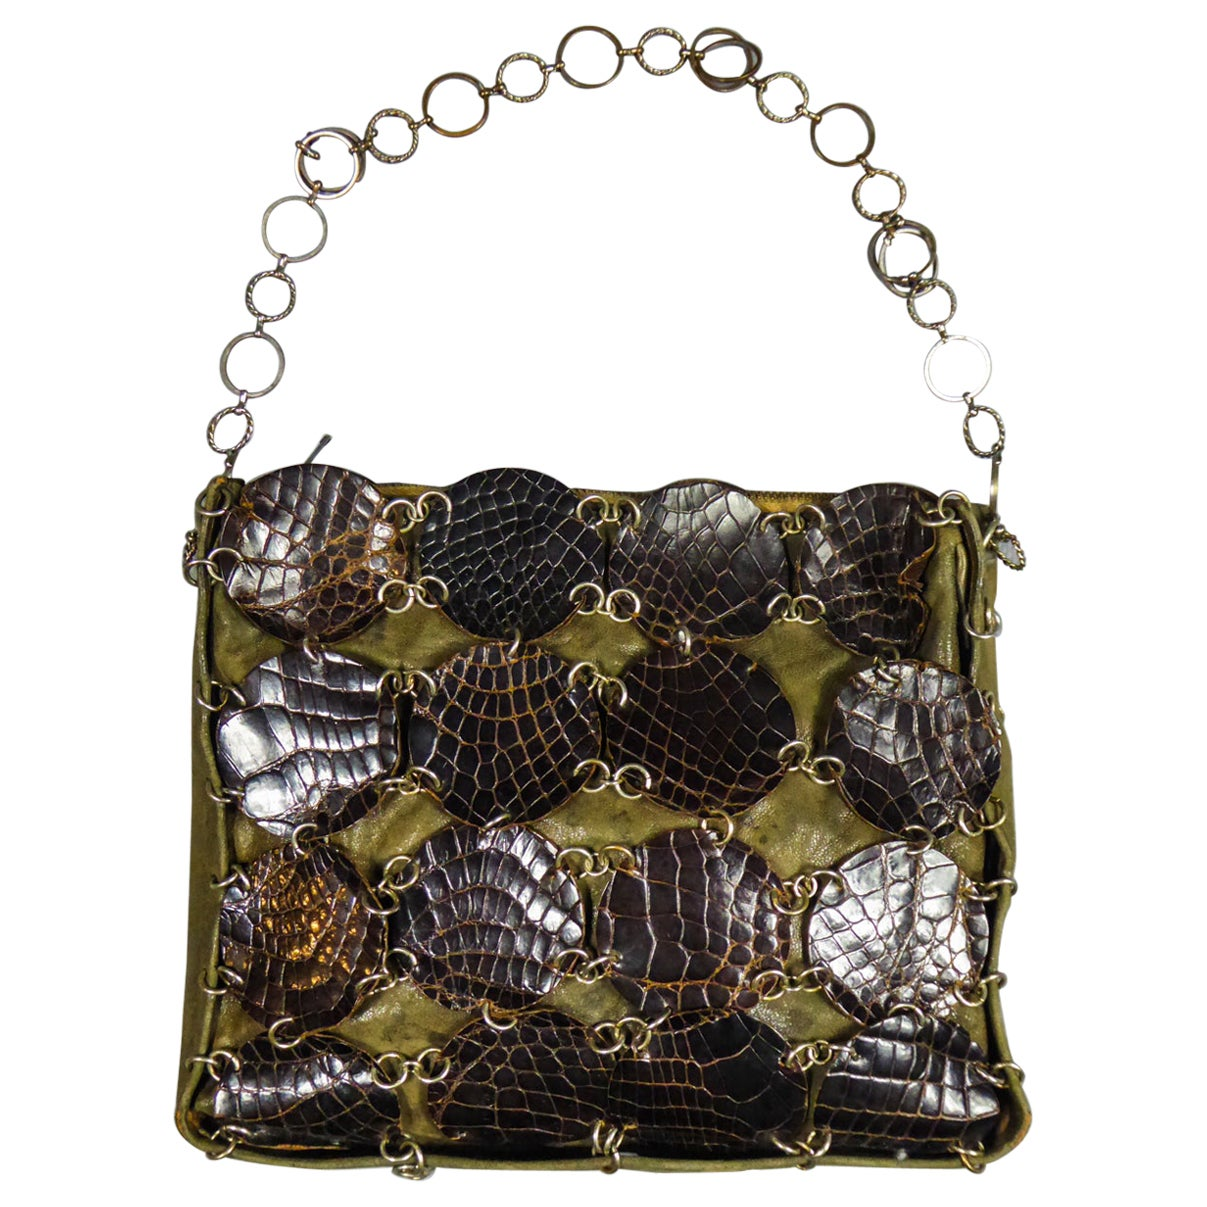 A Paco RabanneEvening Clutch in Khaki Leather and Pads Circa 1968